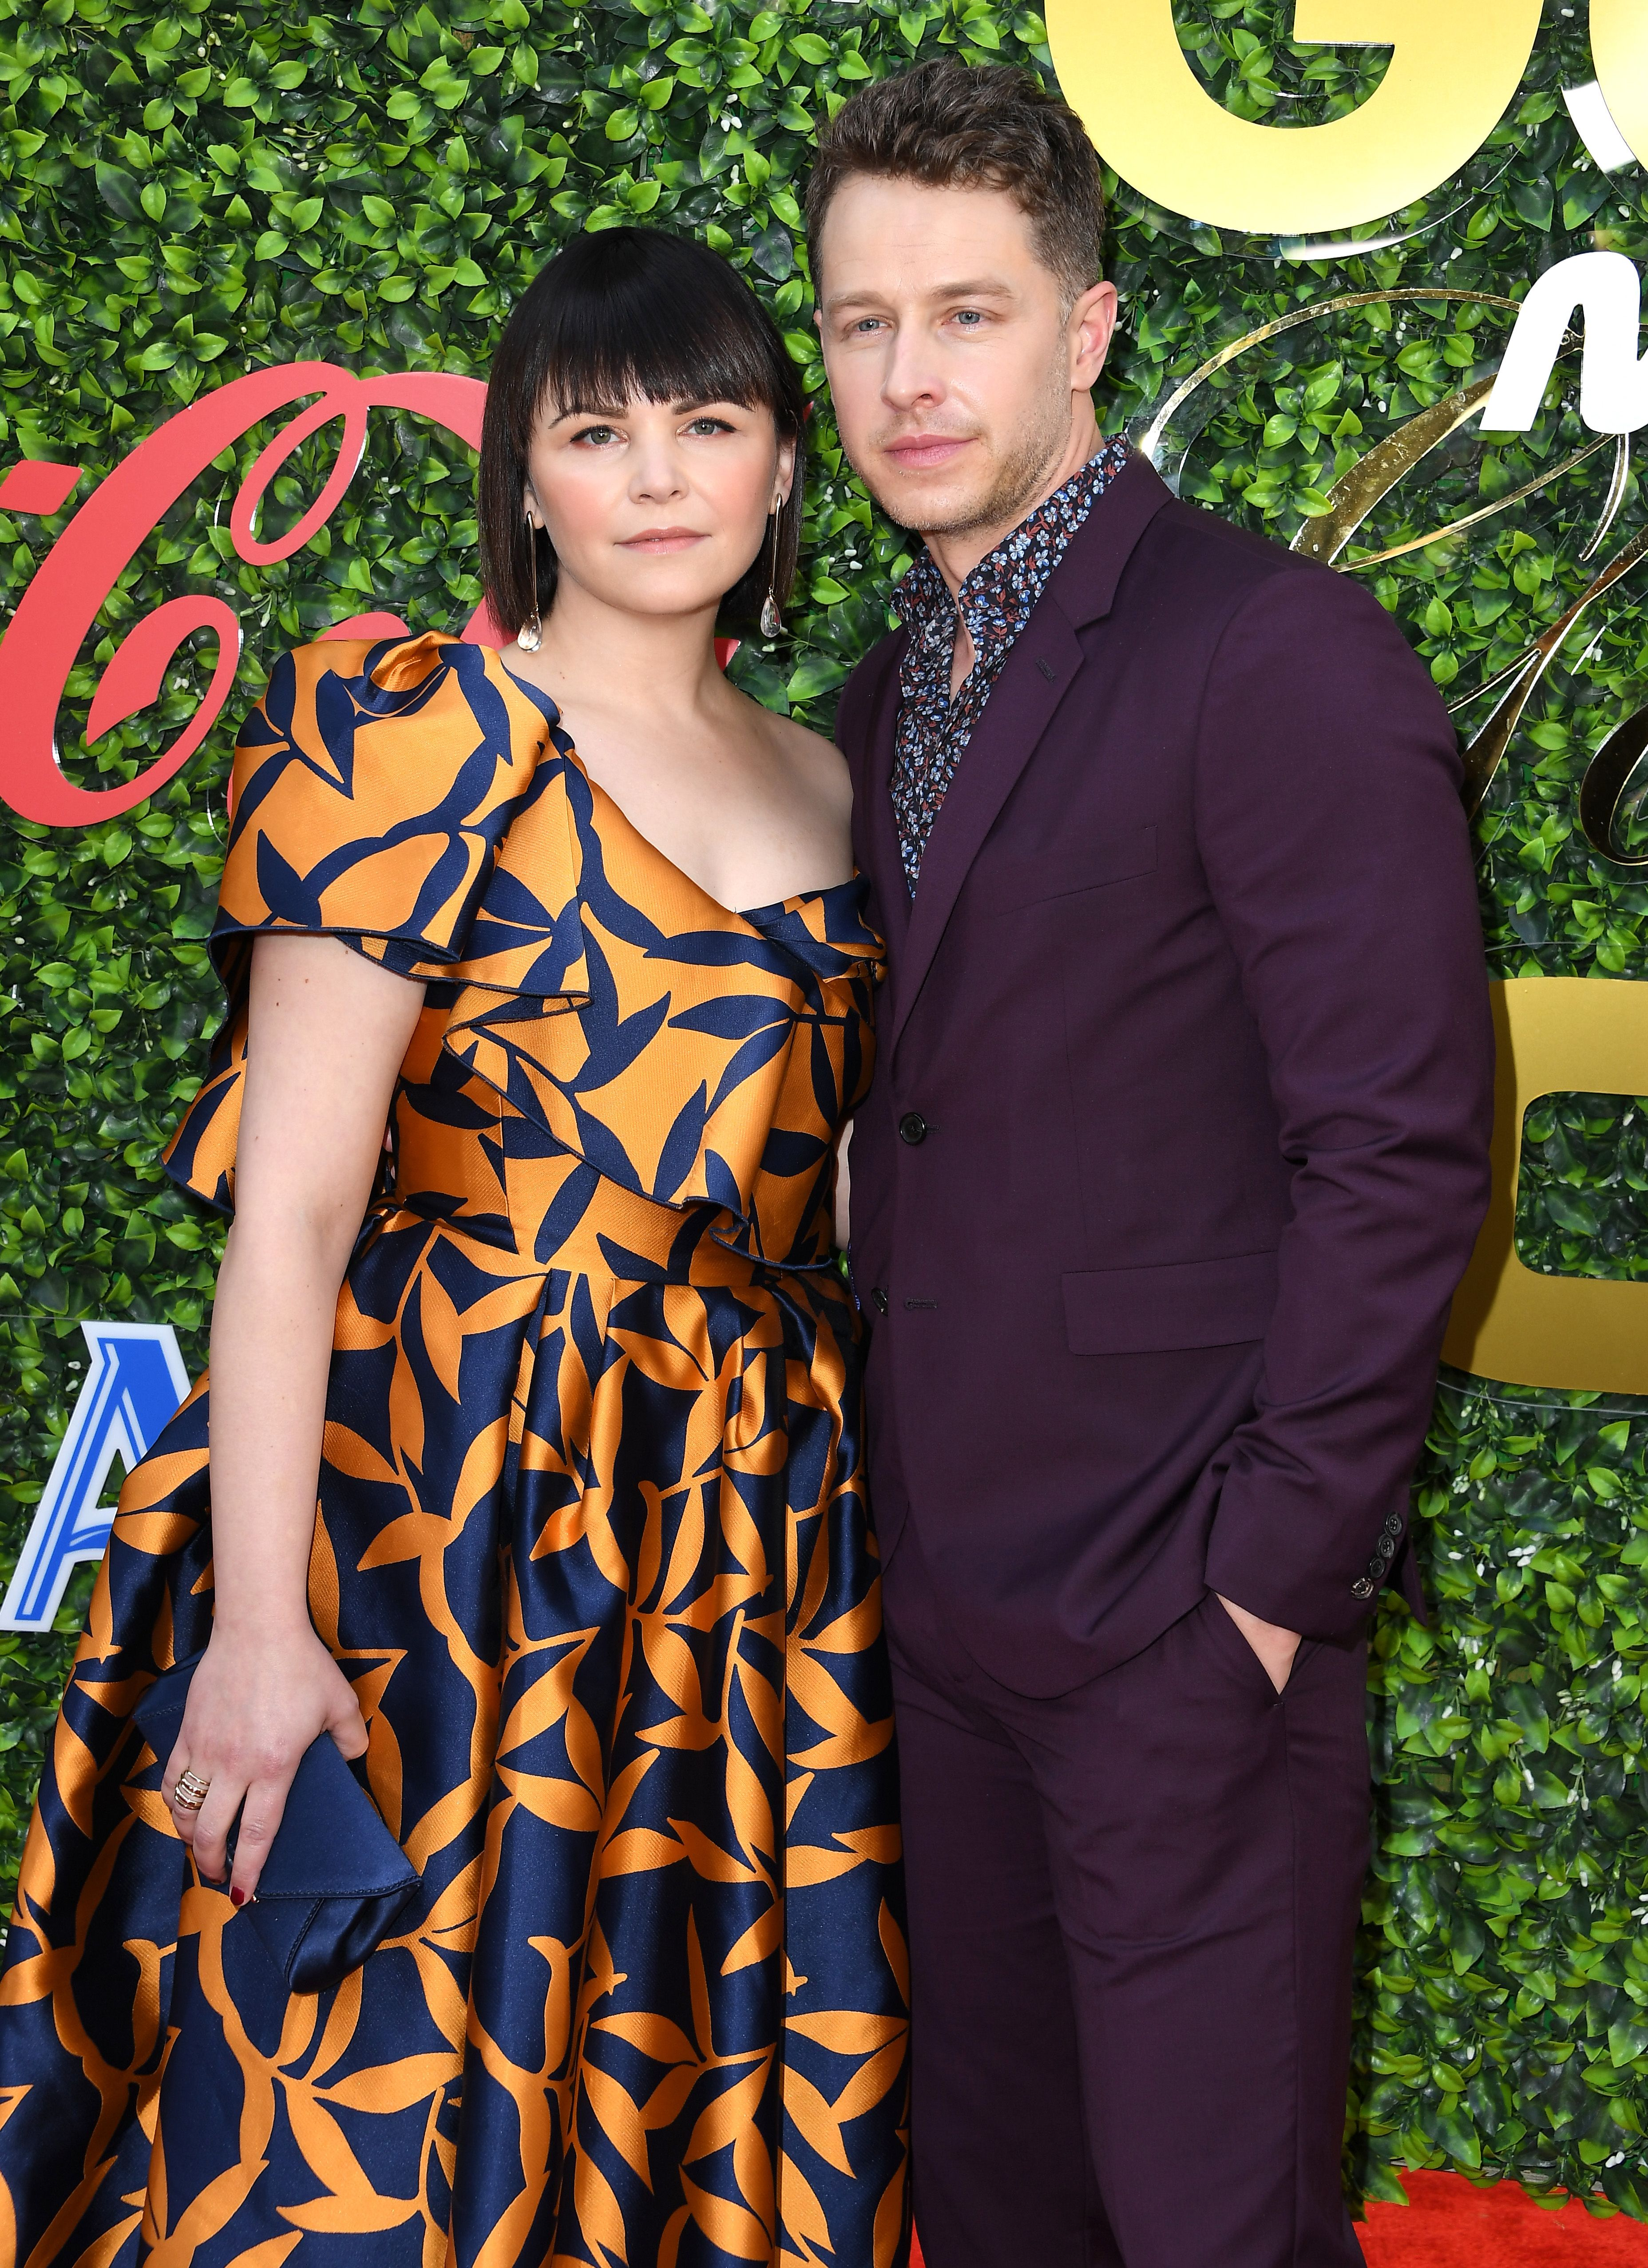 Ginnifer Goodwin and Josh Dallas at the 7th Annual Gold Meets Golden in 2020 in Los Angeles, California | Source: Getty Images